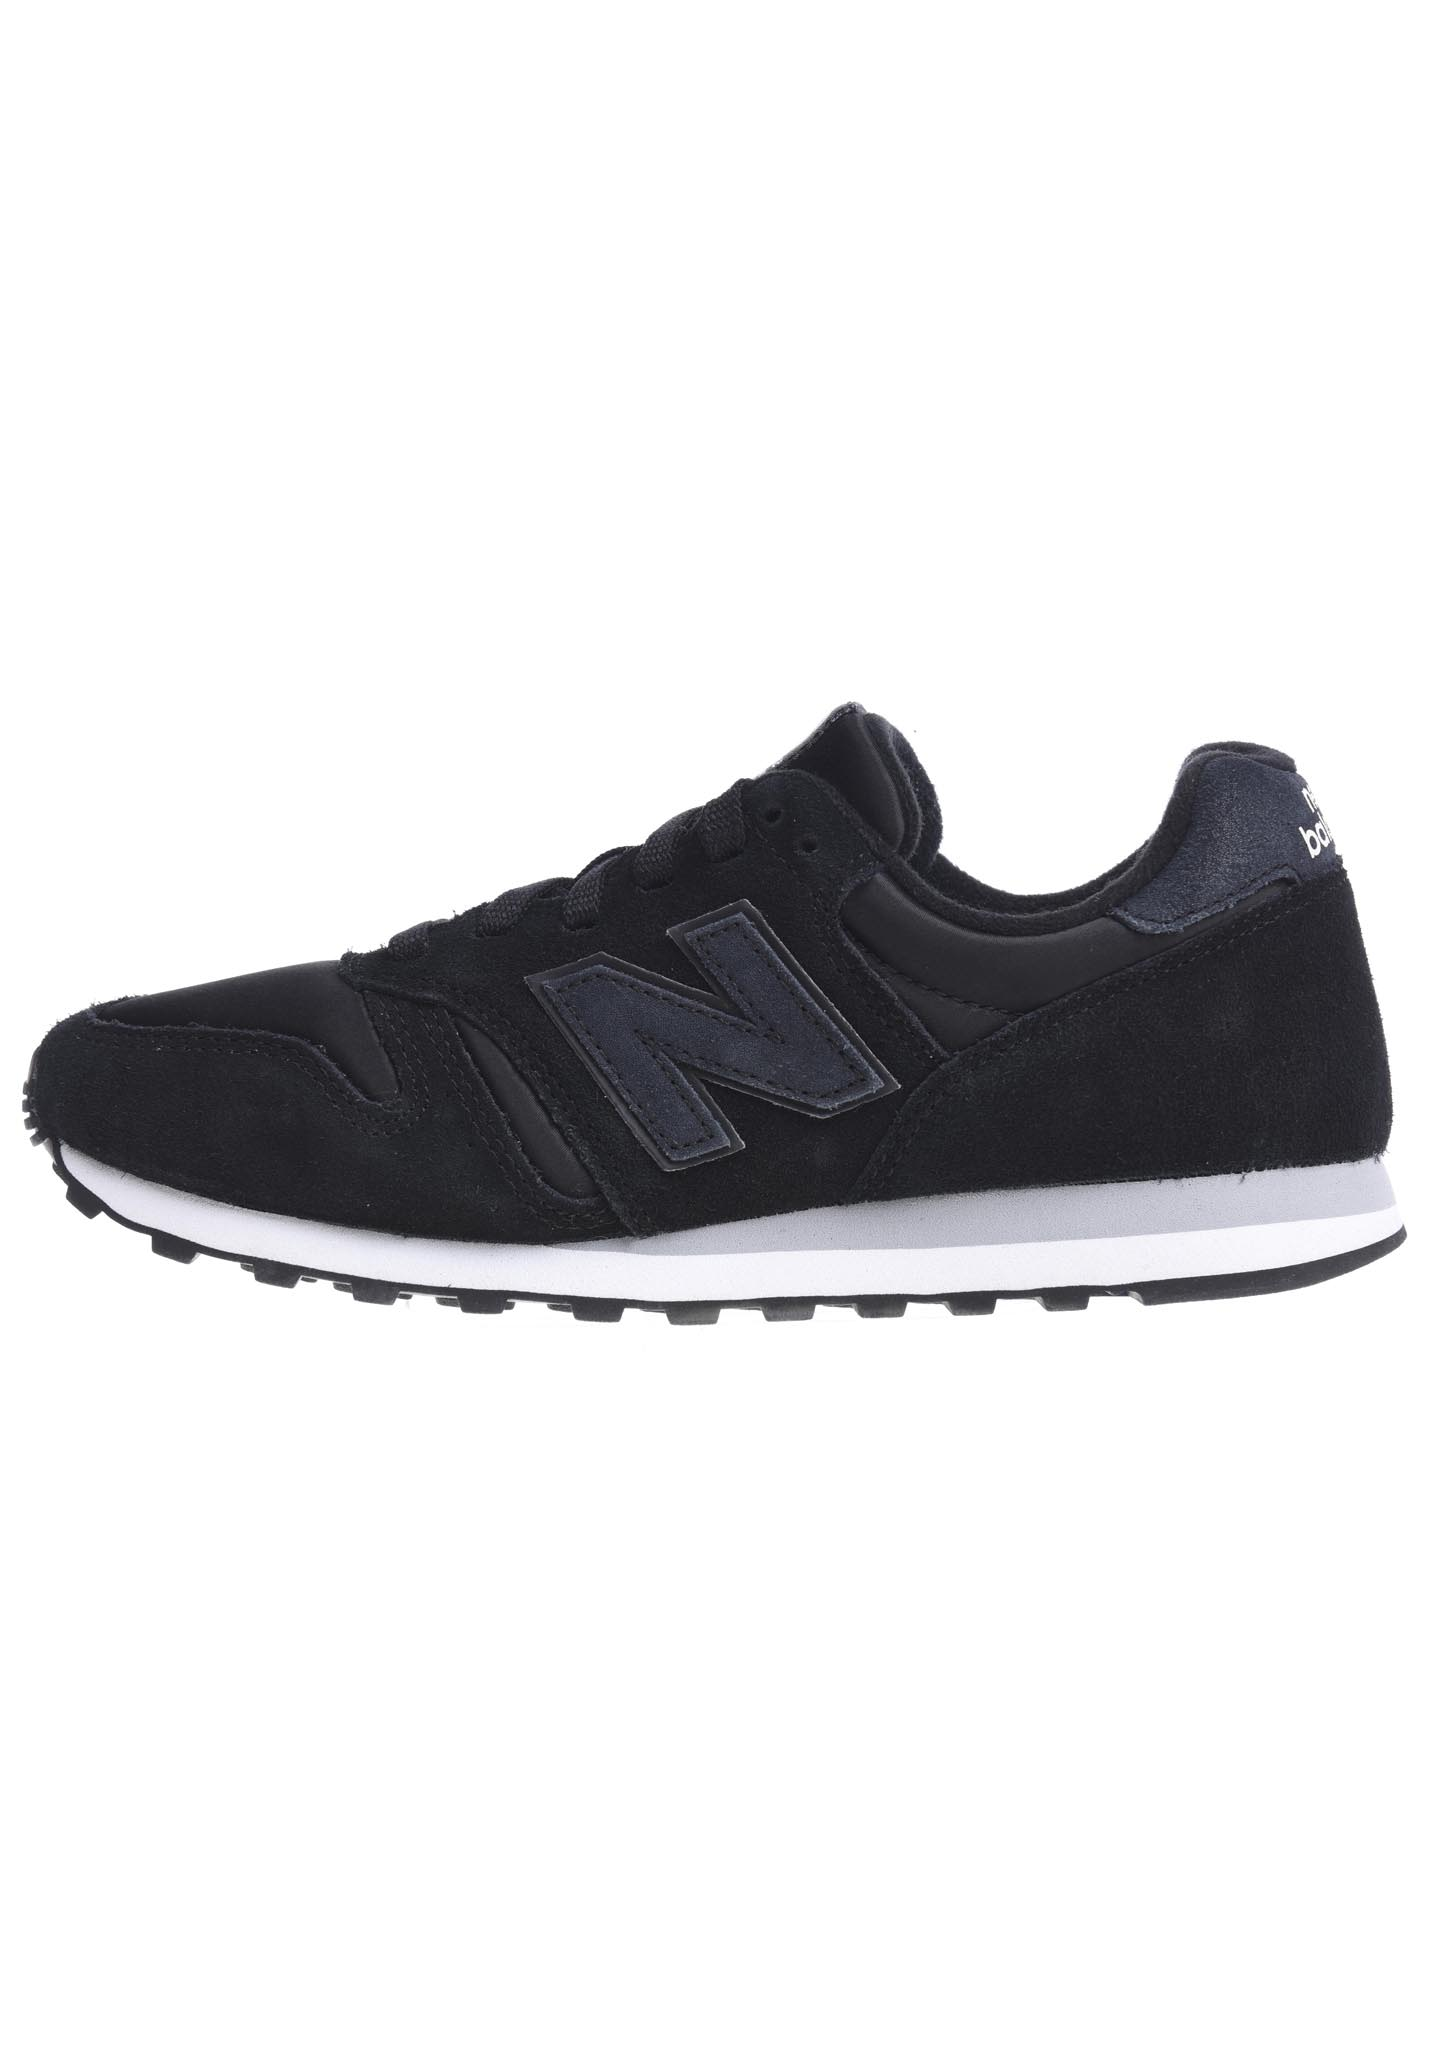 07c7e743462 NEW BALANCE WL373 B - Sneakers voor Dames - Zwart - Planet Sports